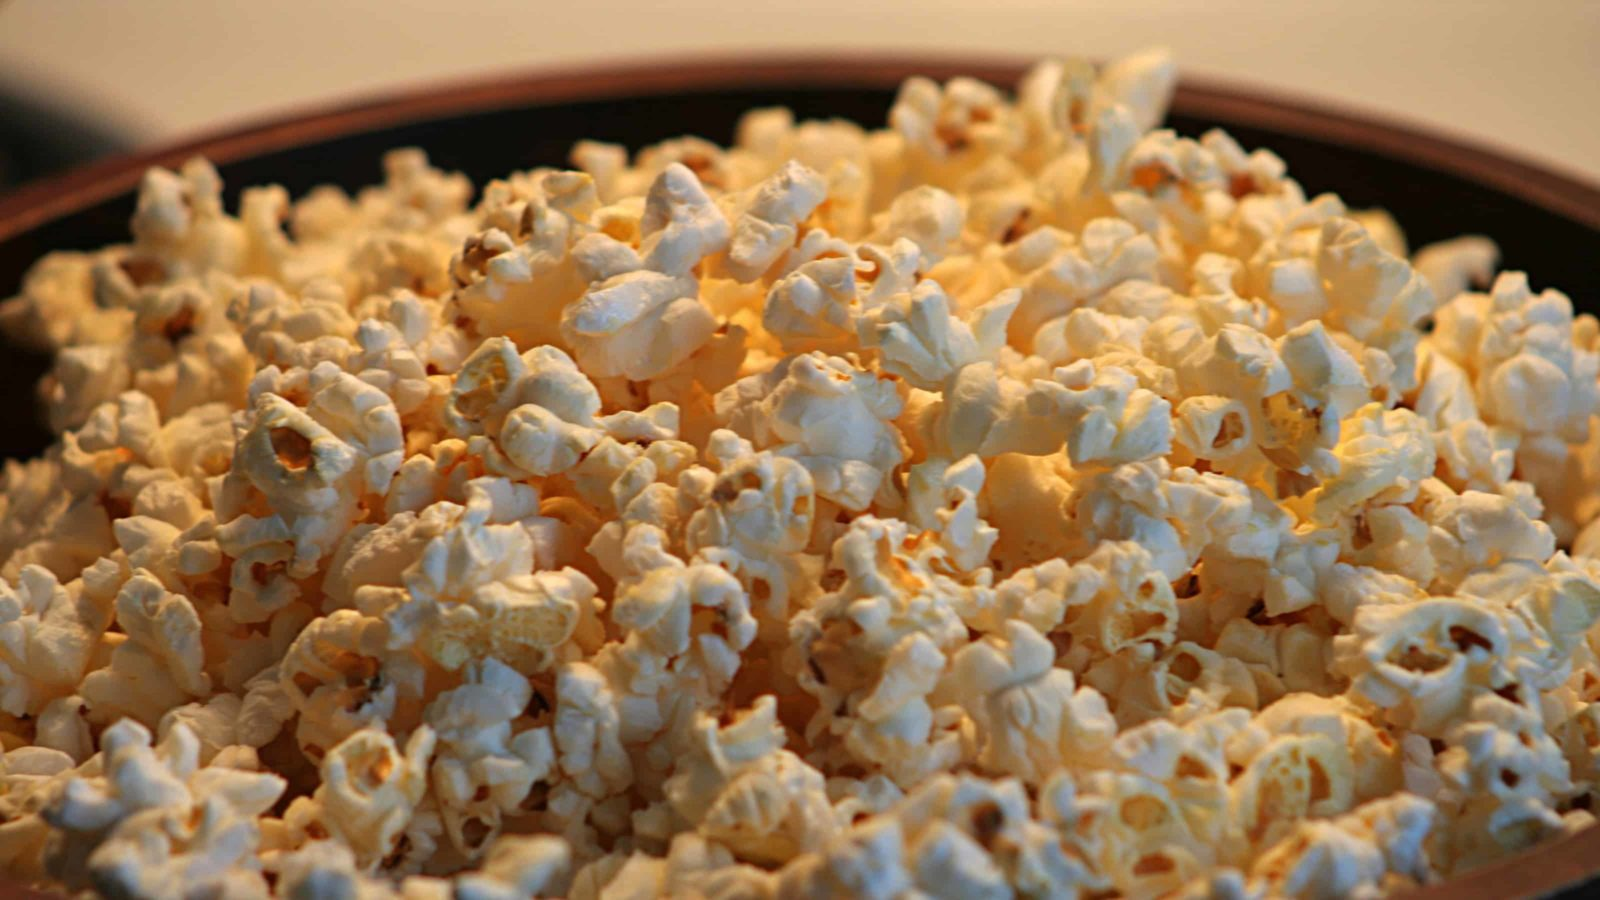 Popcorn glimmers in a warm light. Creative Commons courtesy photo.